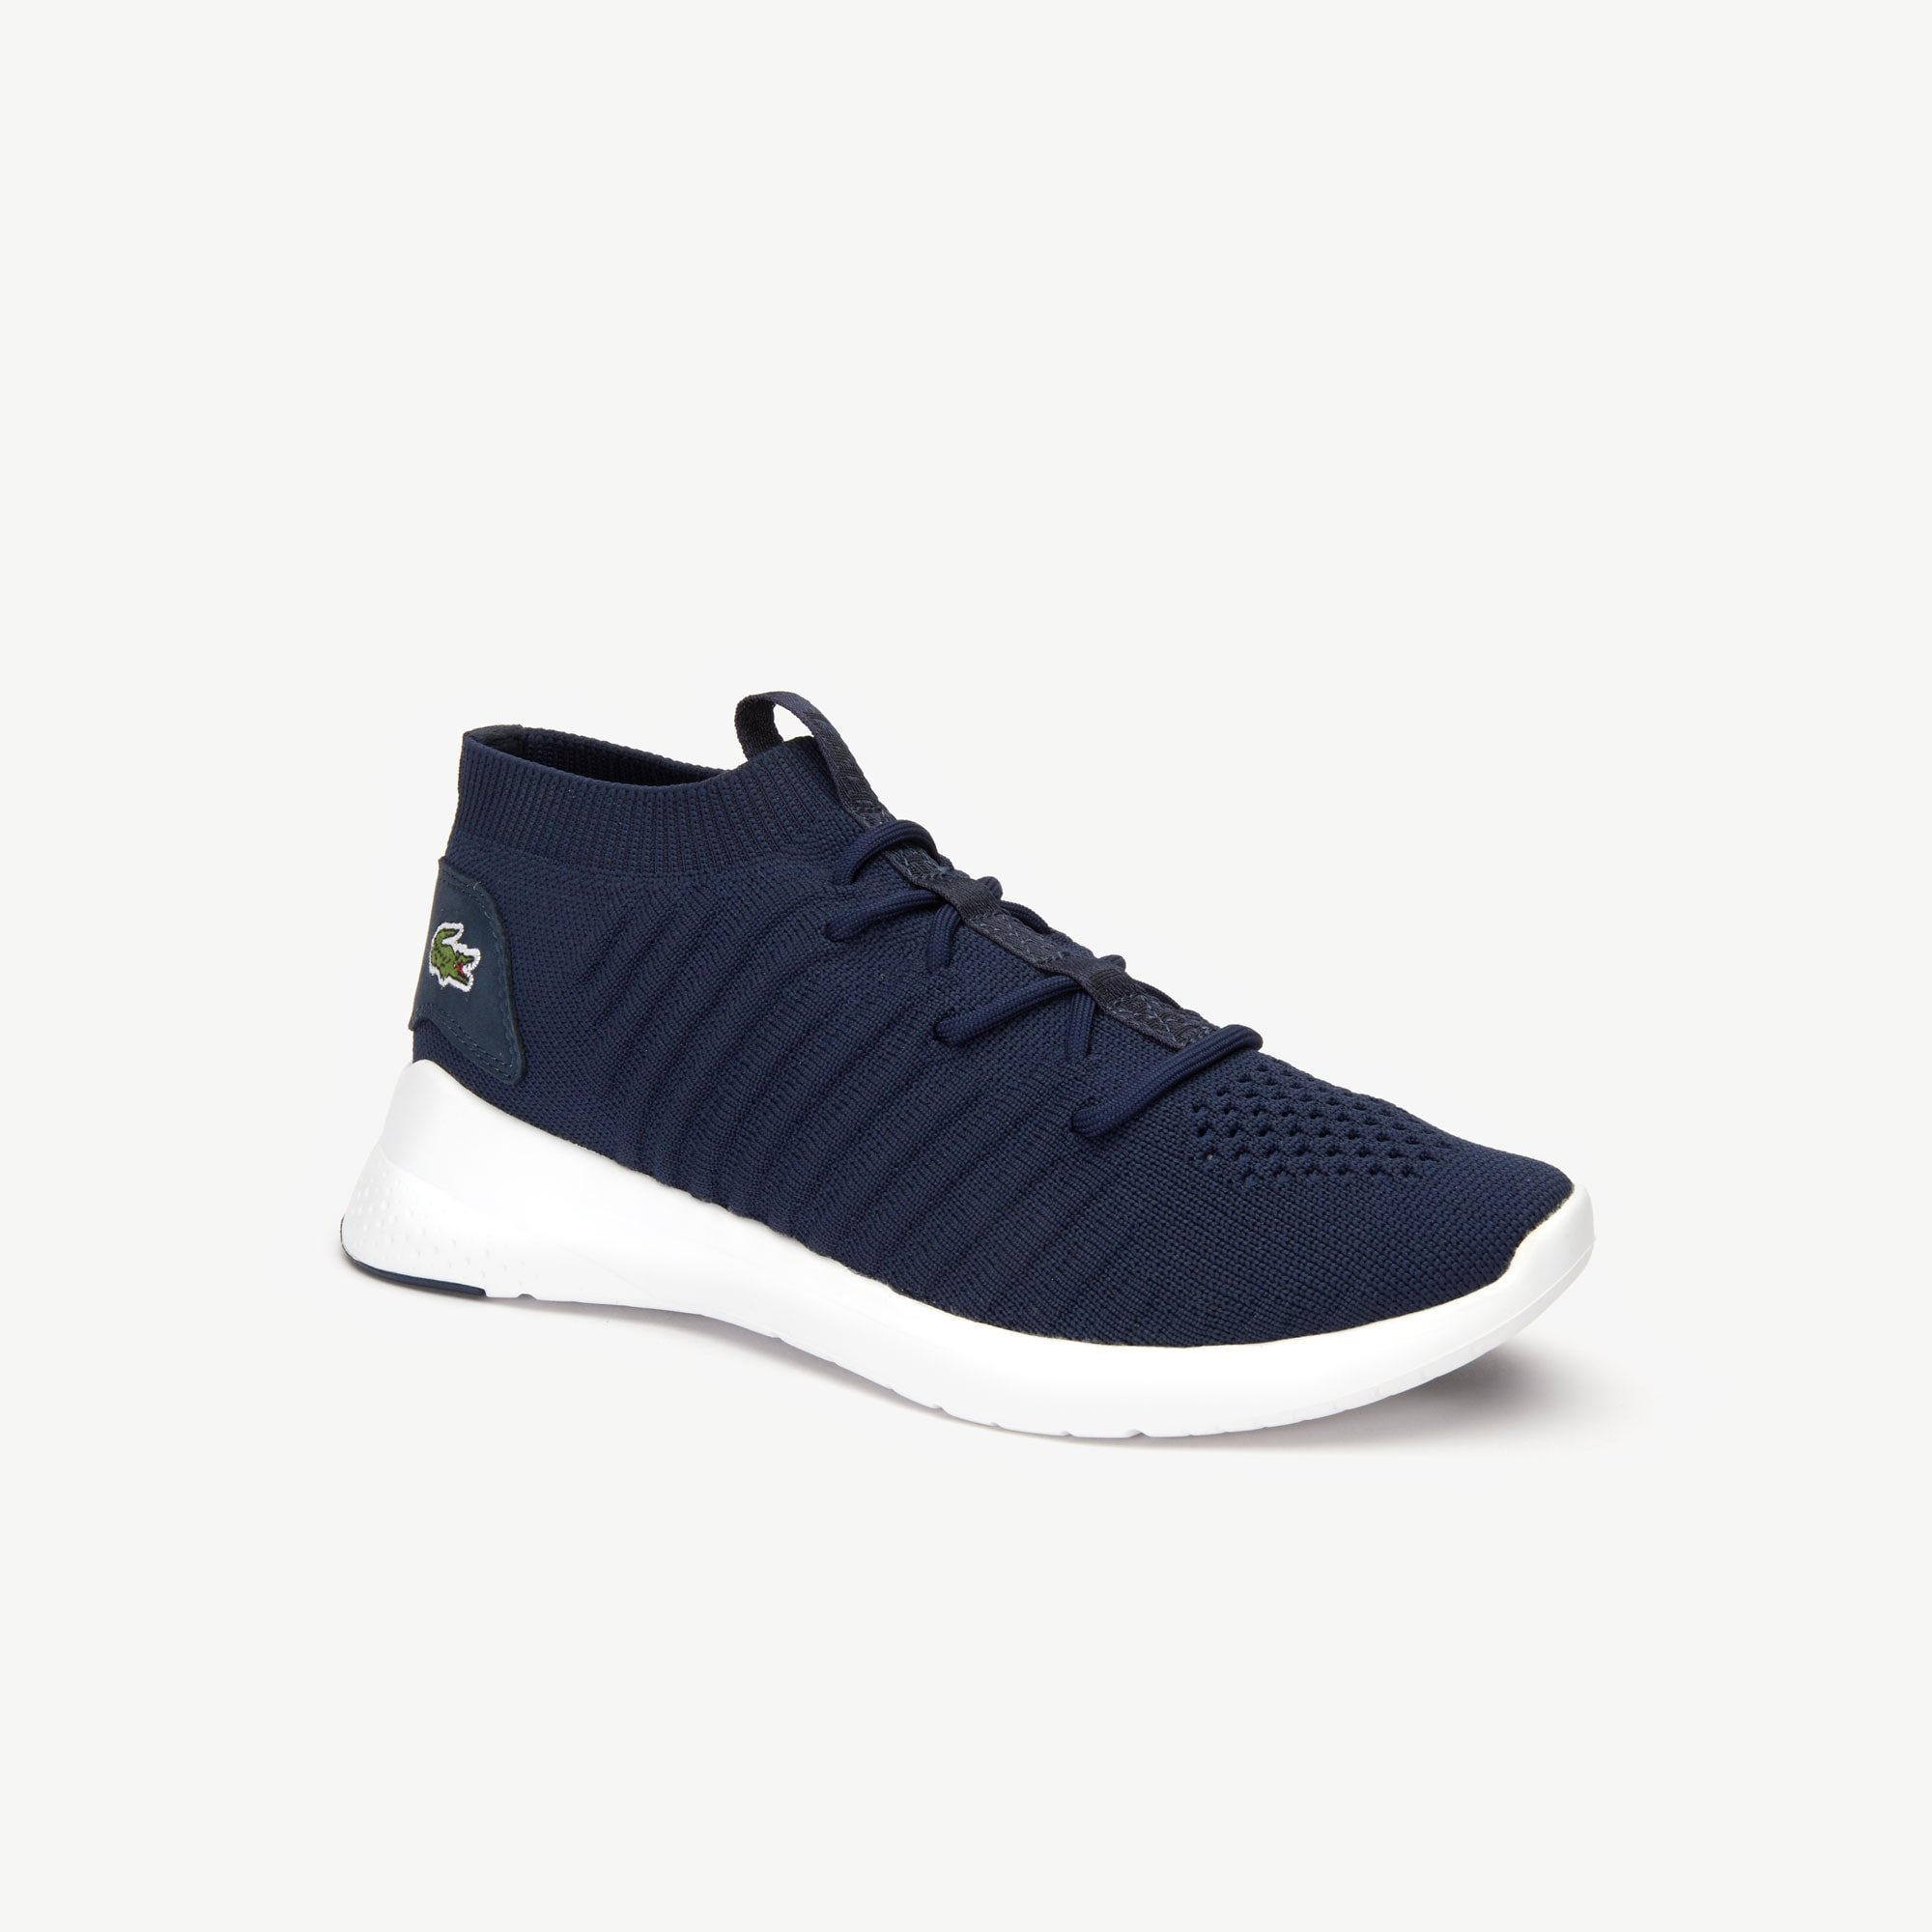 6afc81080 Chaussures femme | Collection Femme | LACOSTE